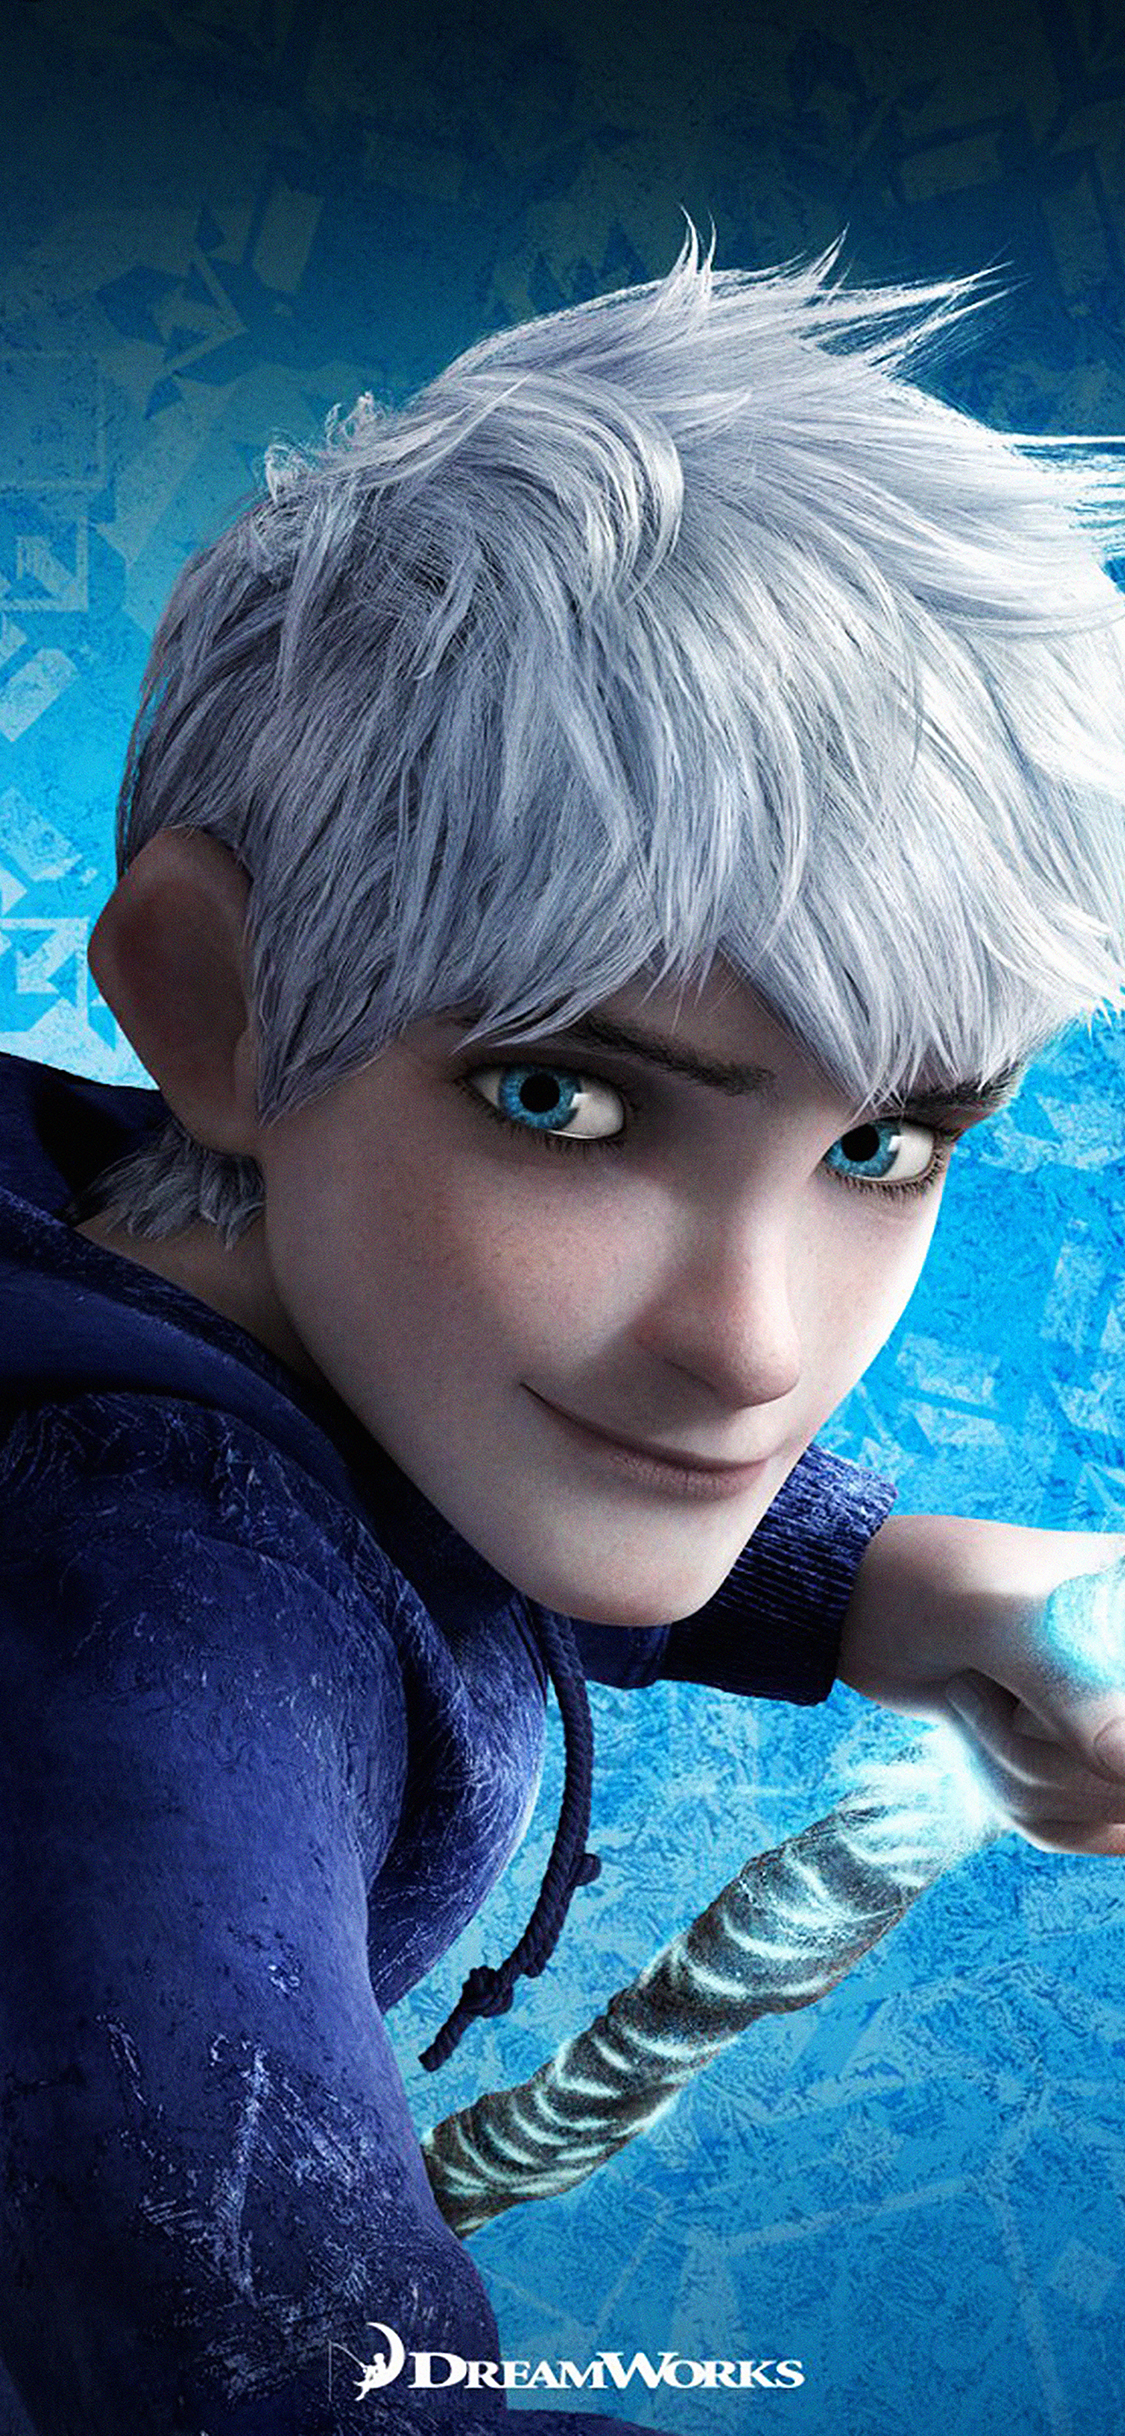 Ac36 Wallpaper Rise Of The Guardians Jack Frost Dreamworks Papers Co